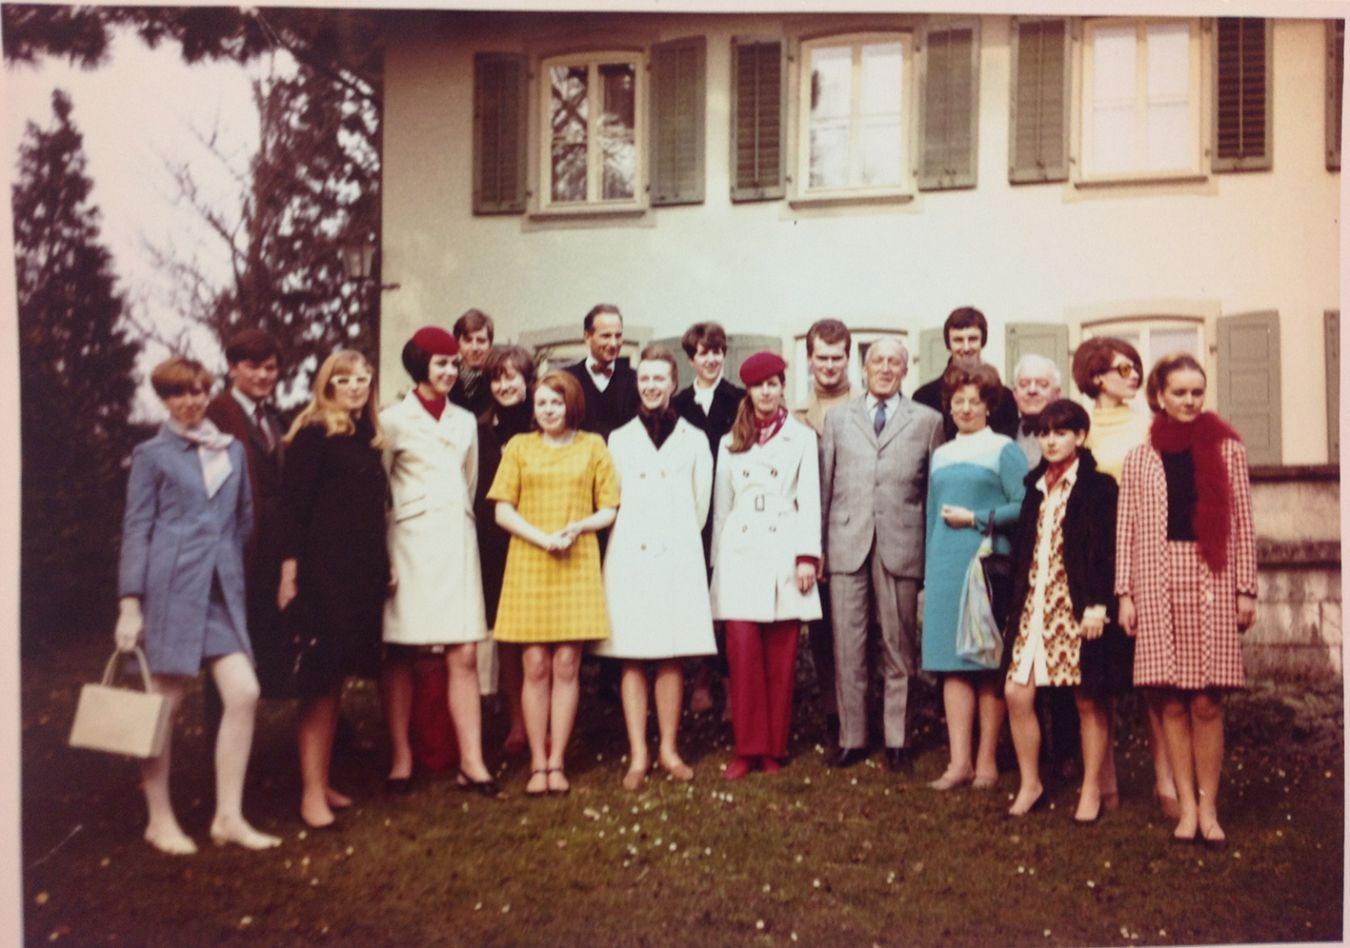 Kingston College of Art's Head of Fashion, Daphne Brooker, centre front, poses with her students during a visit to Bally's Shoe Factory Museum in Schoenwerd, Switzerland, in March 1966. Photo: Kingston University Special Collections.